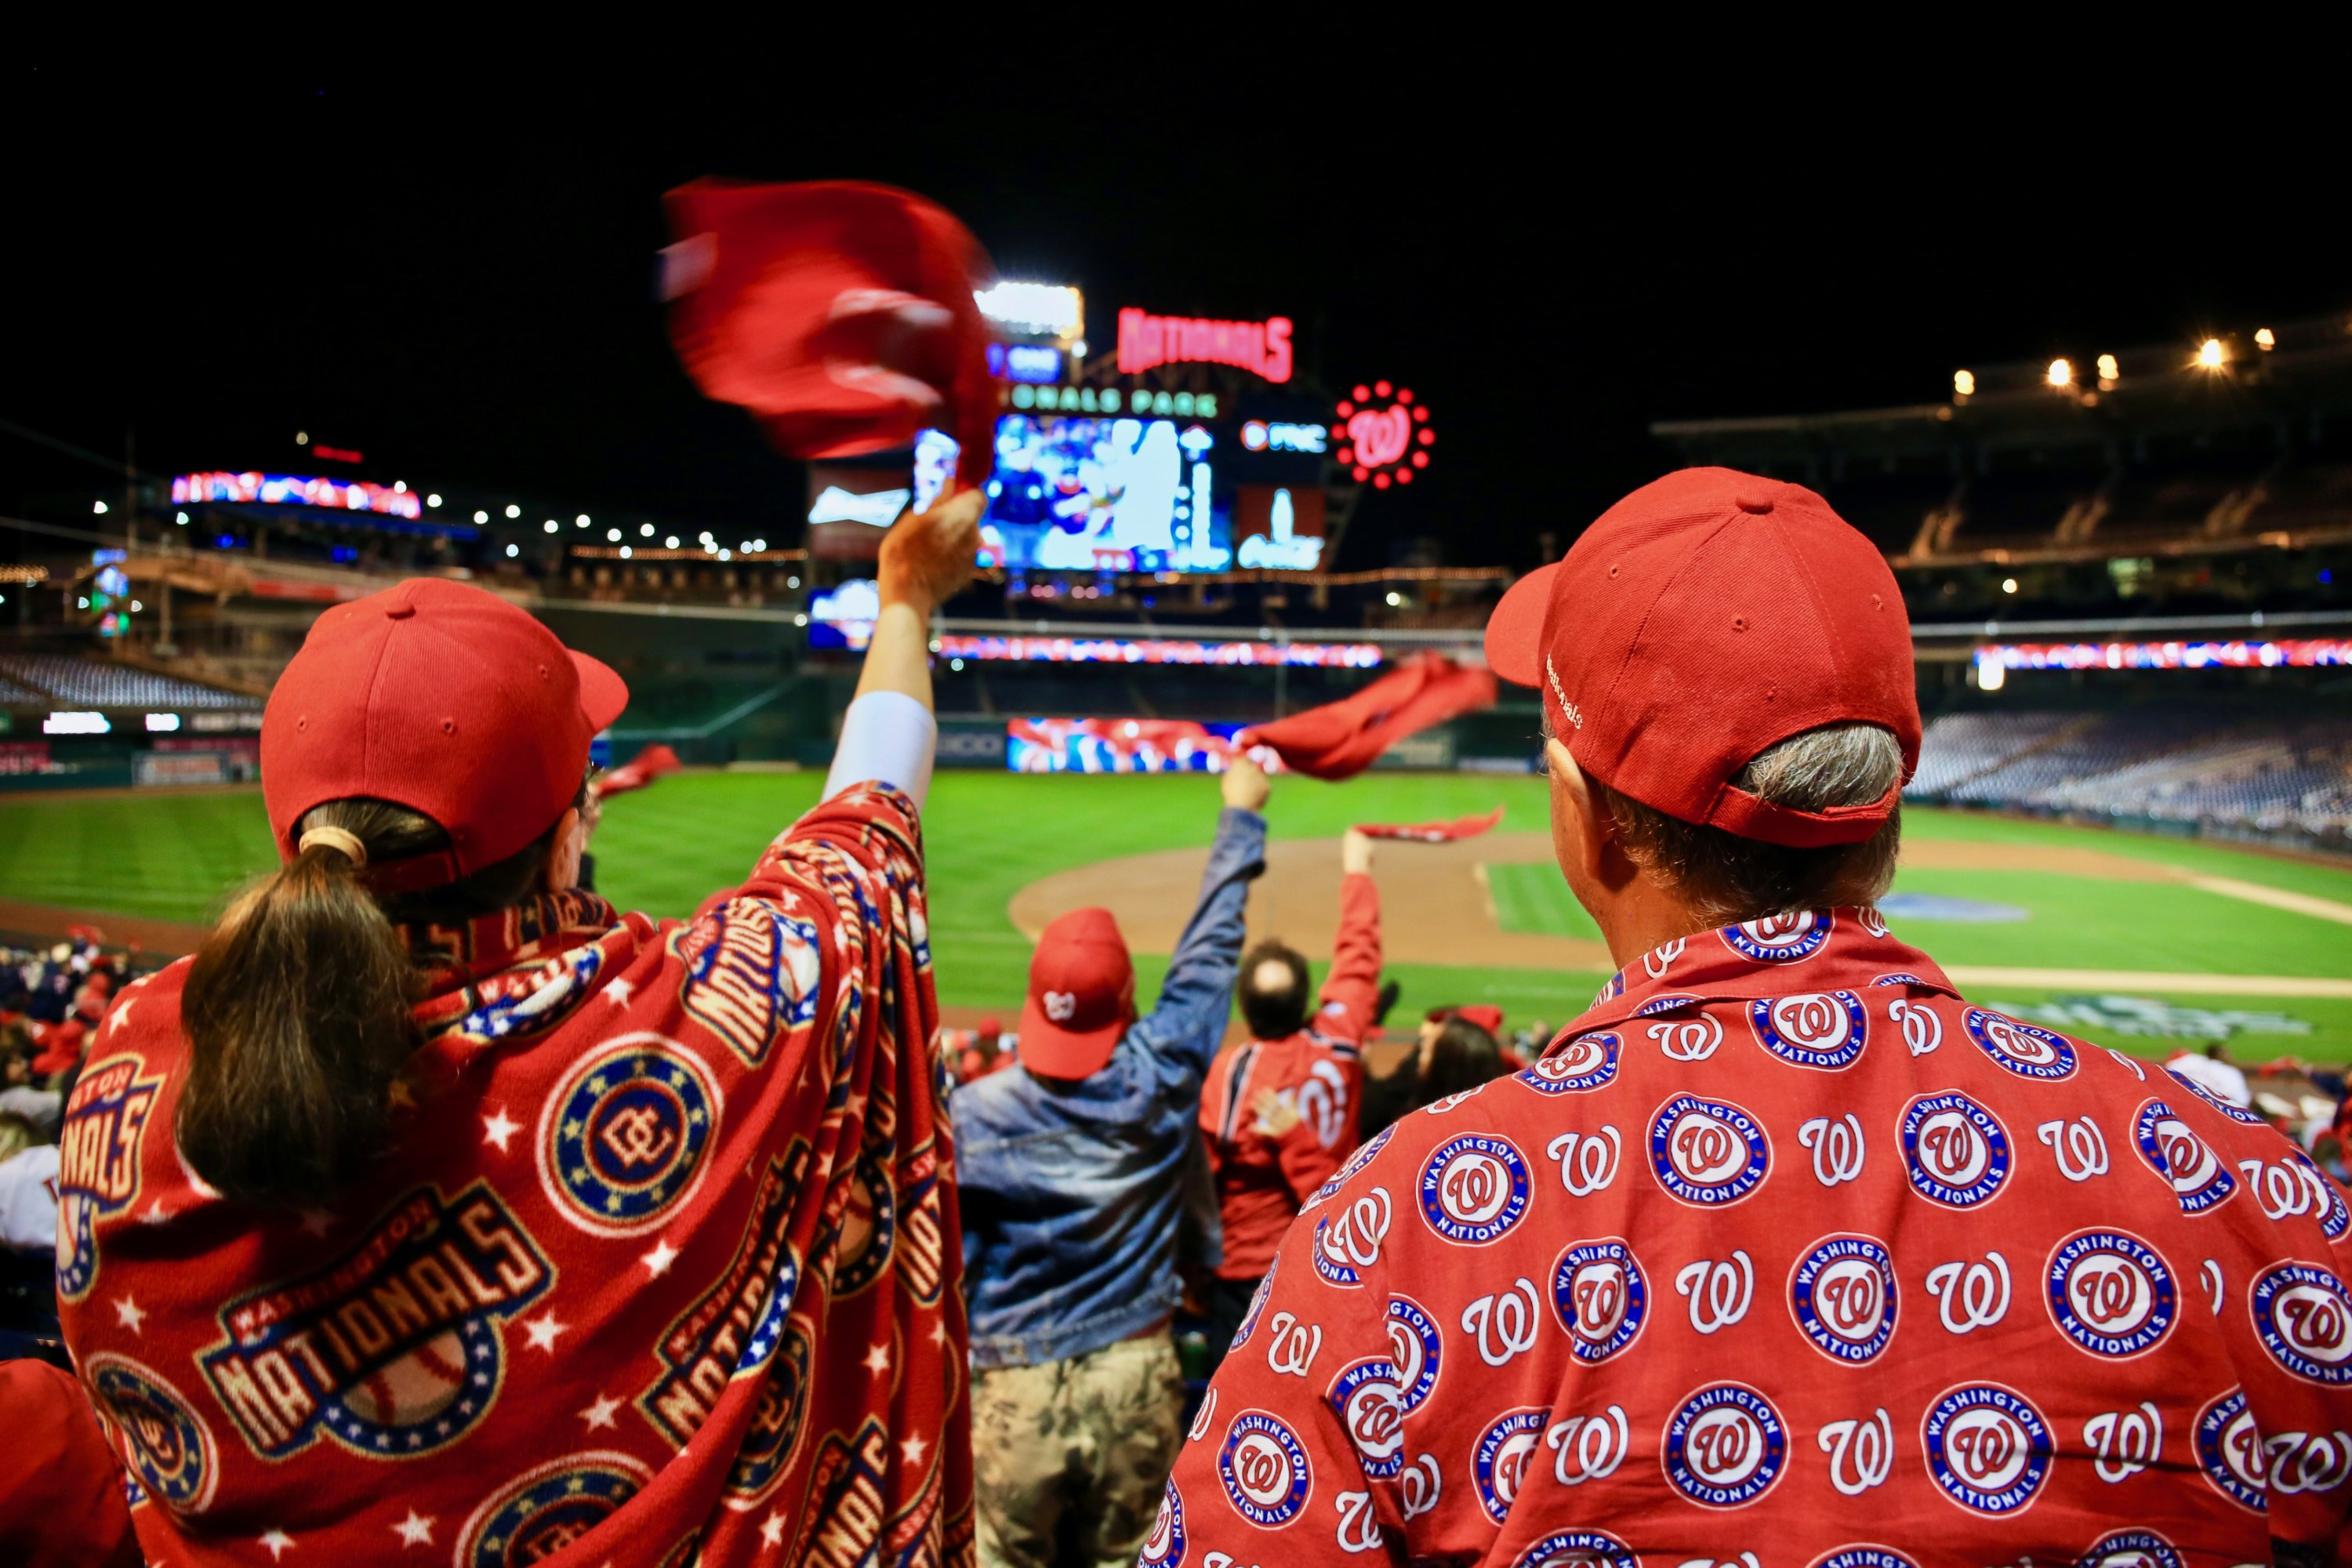 Photo of the Day: Nationals Park, October 9th, 9:42 pm